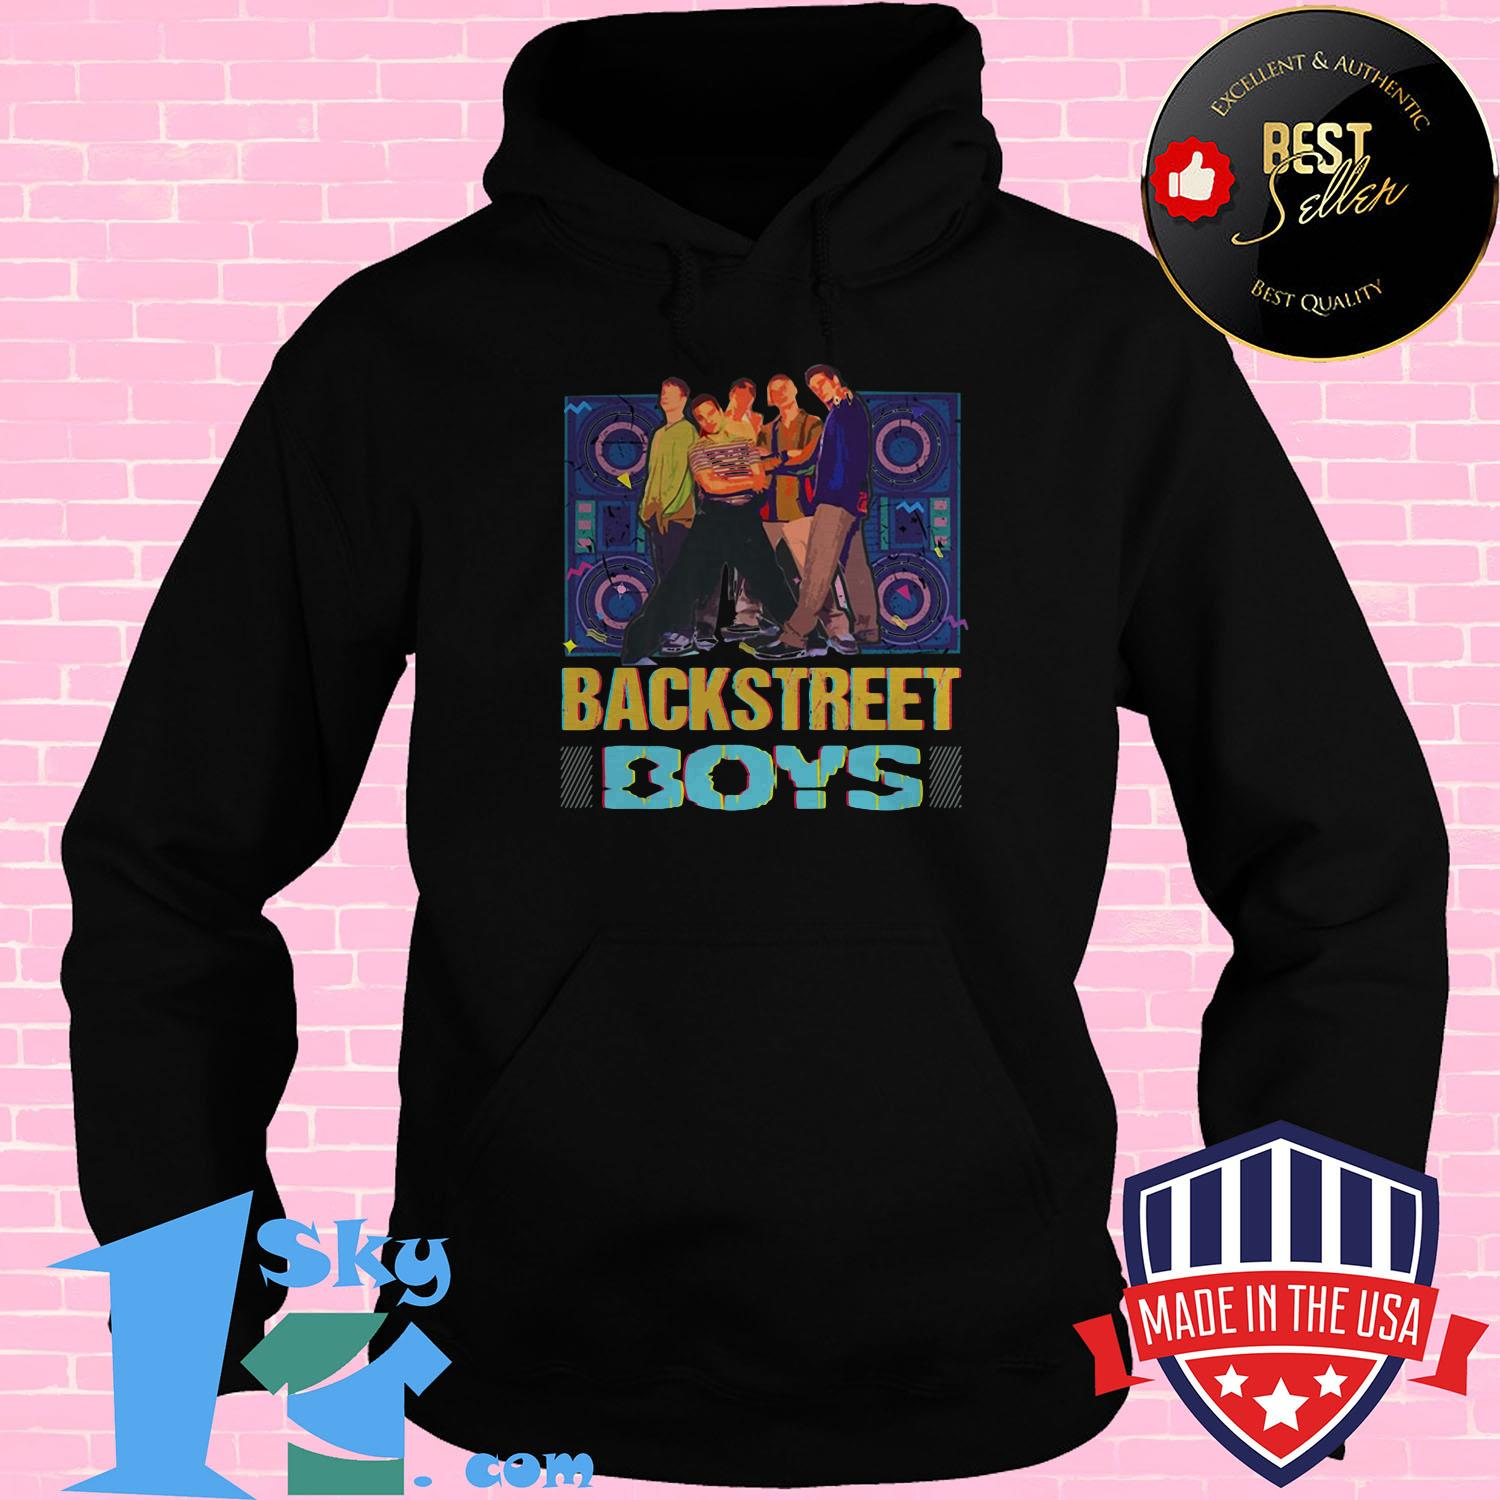 90s backstreet boys vintage back boys music band hoodie - 90s Backstreet Boys Vintage Back Boys Music Band shirt